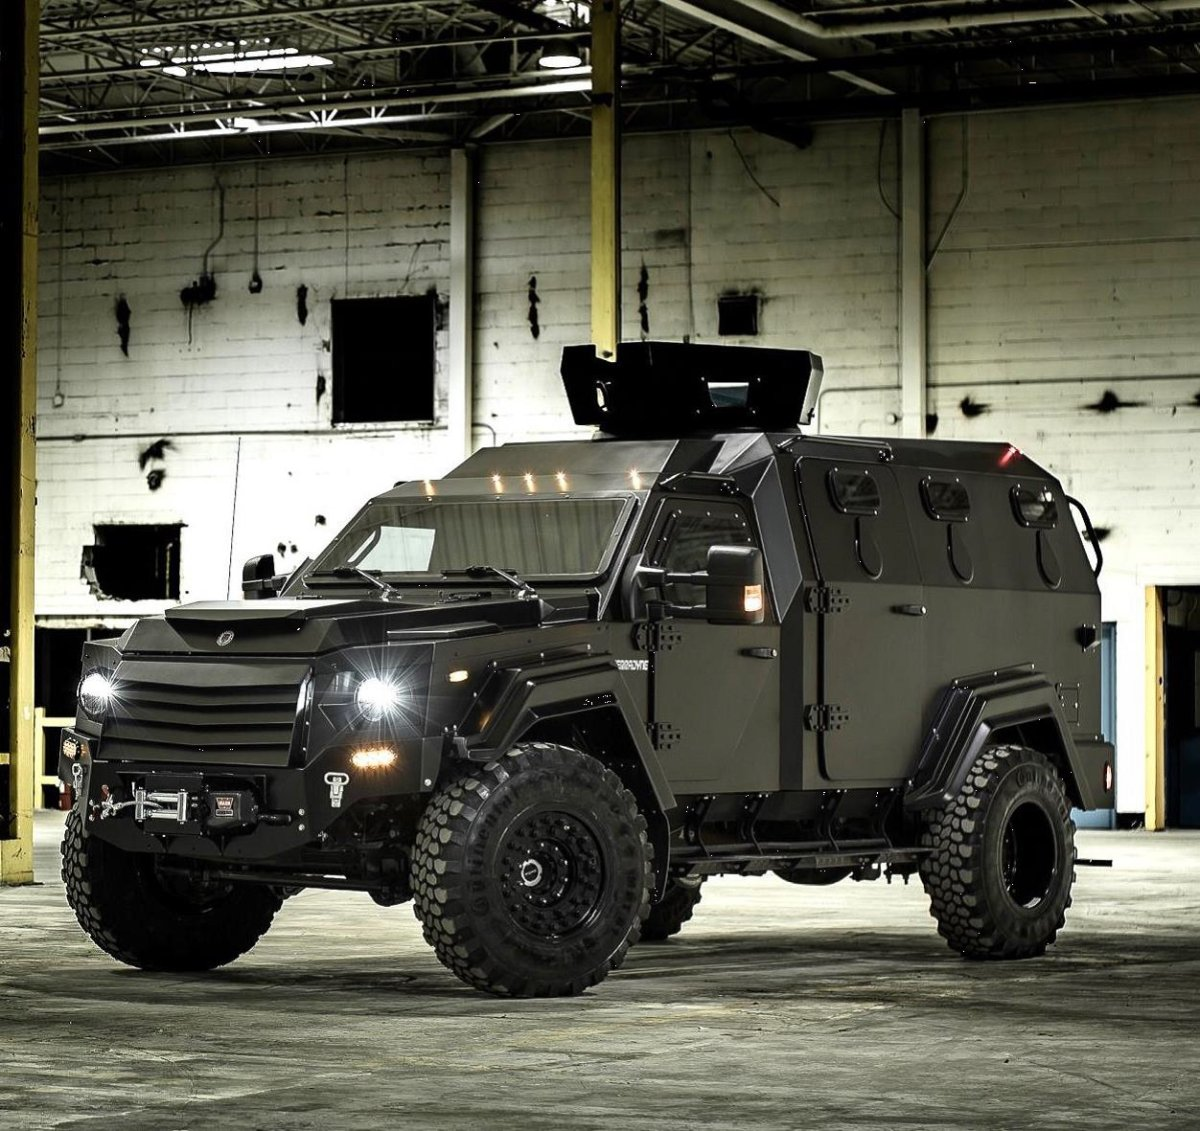 The Winnipeg Police Service has acquired an armoured vehicle much like this one.